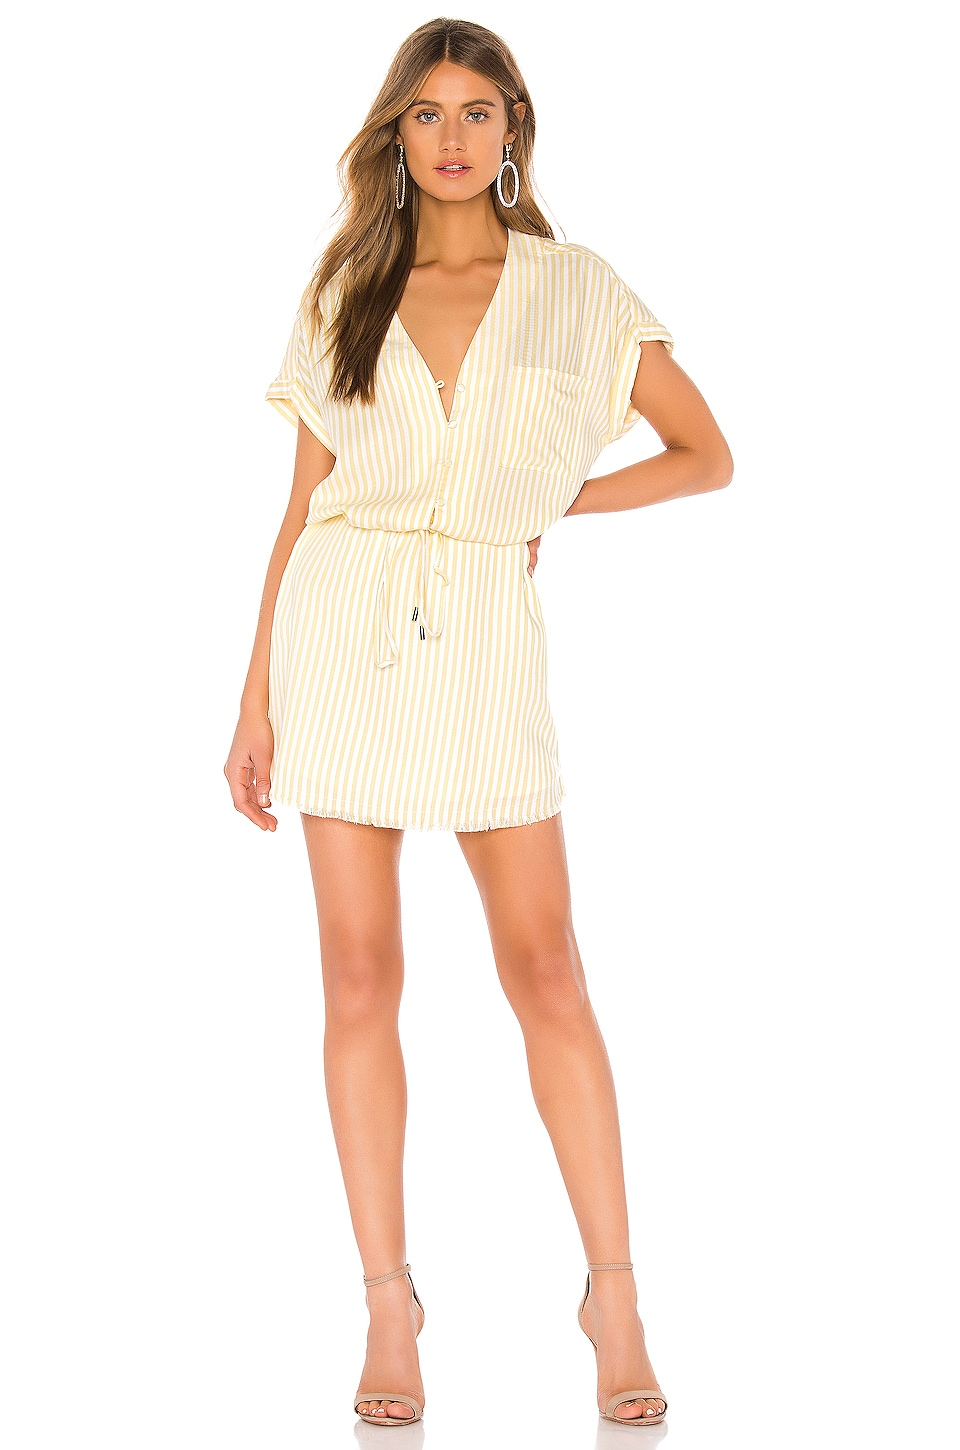 PAIGE Haidee Dress in Surfboard & White